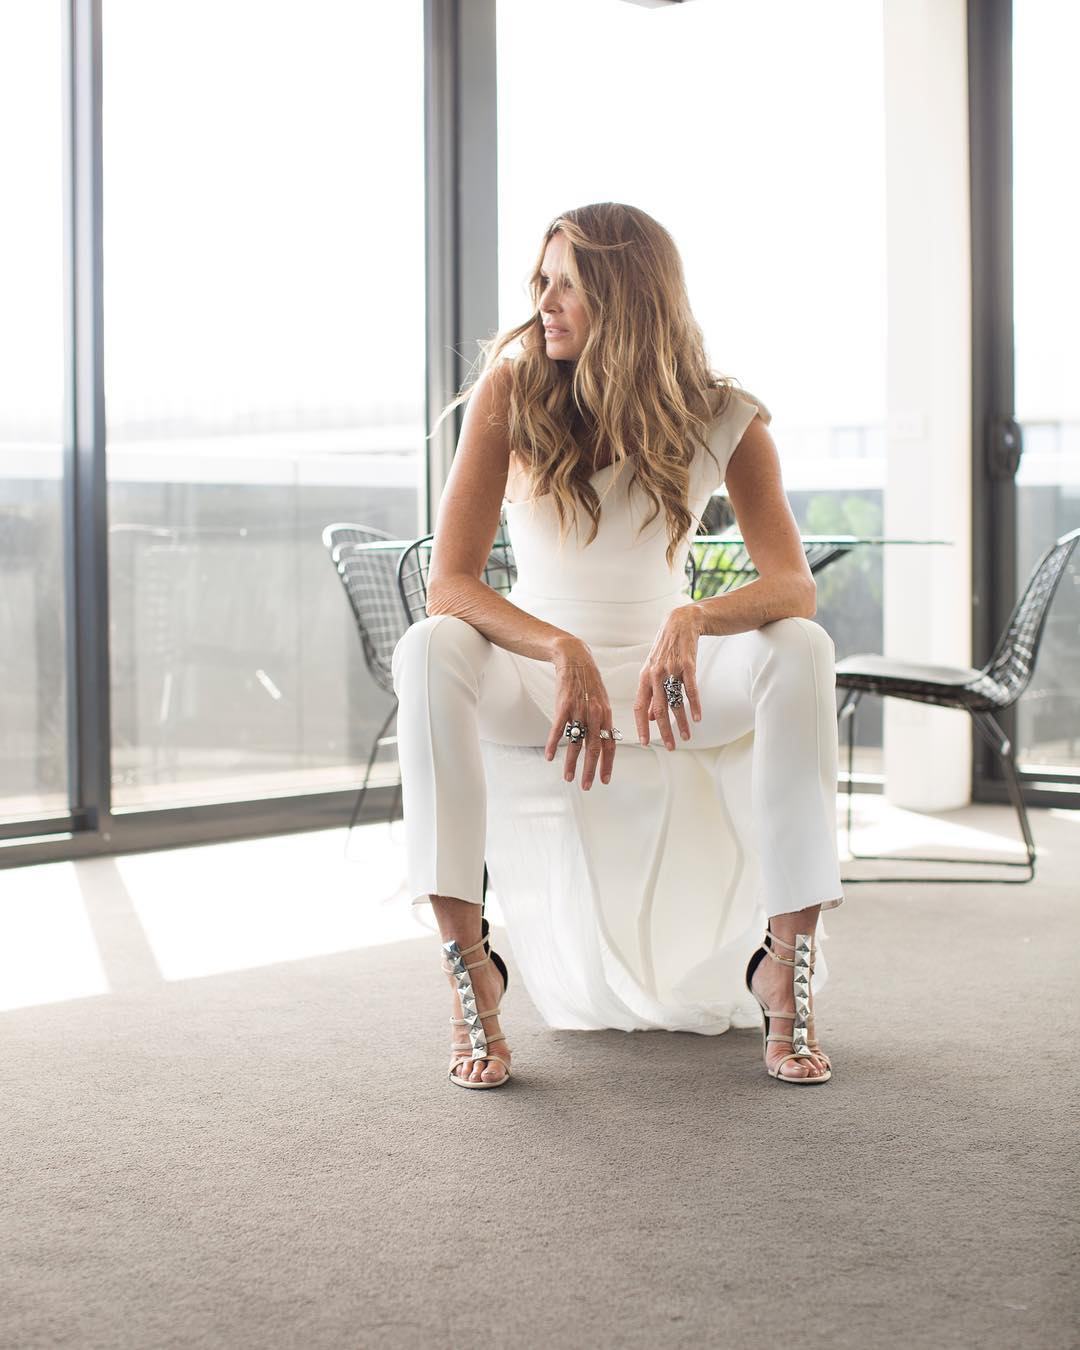 Elle Macpherson In All White Look 2019